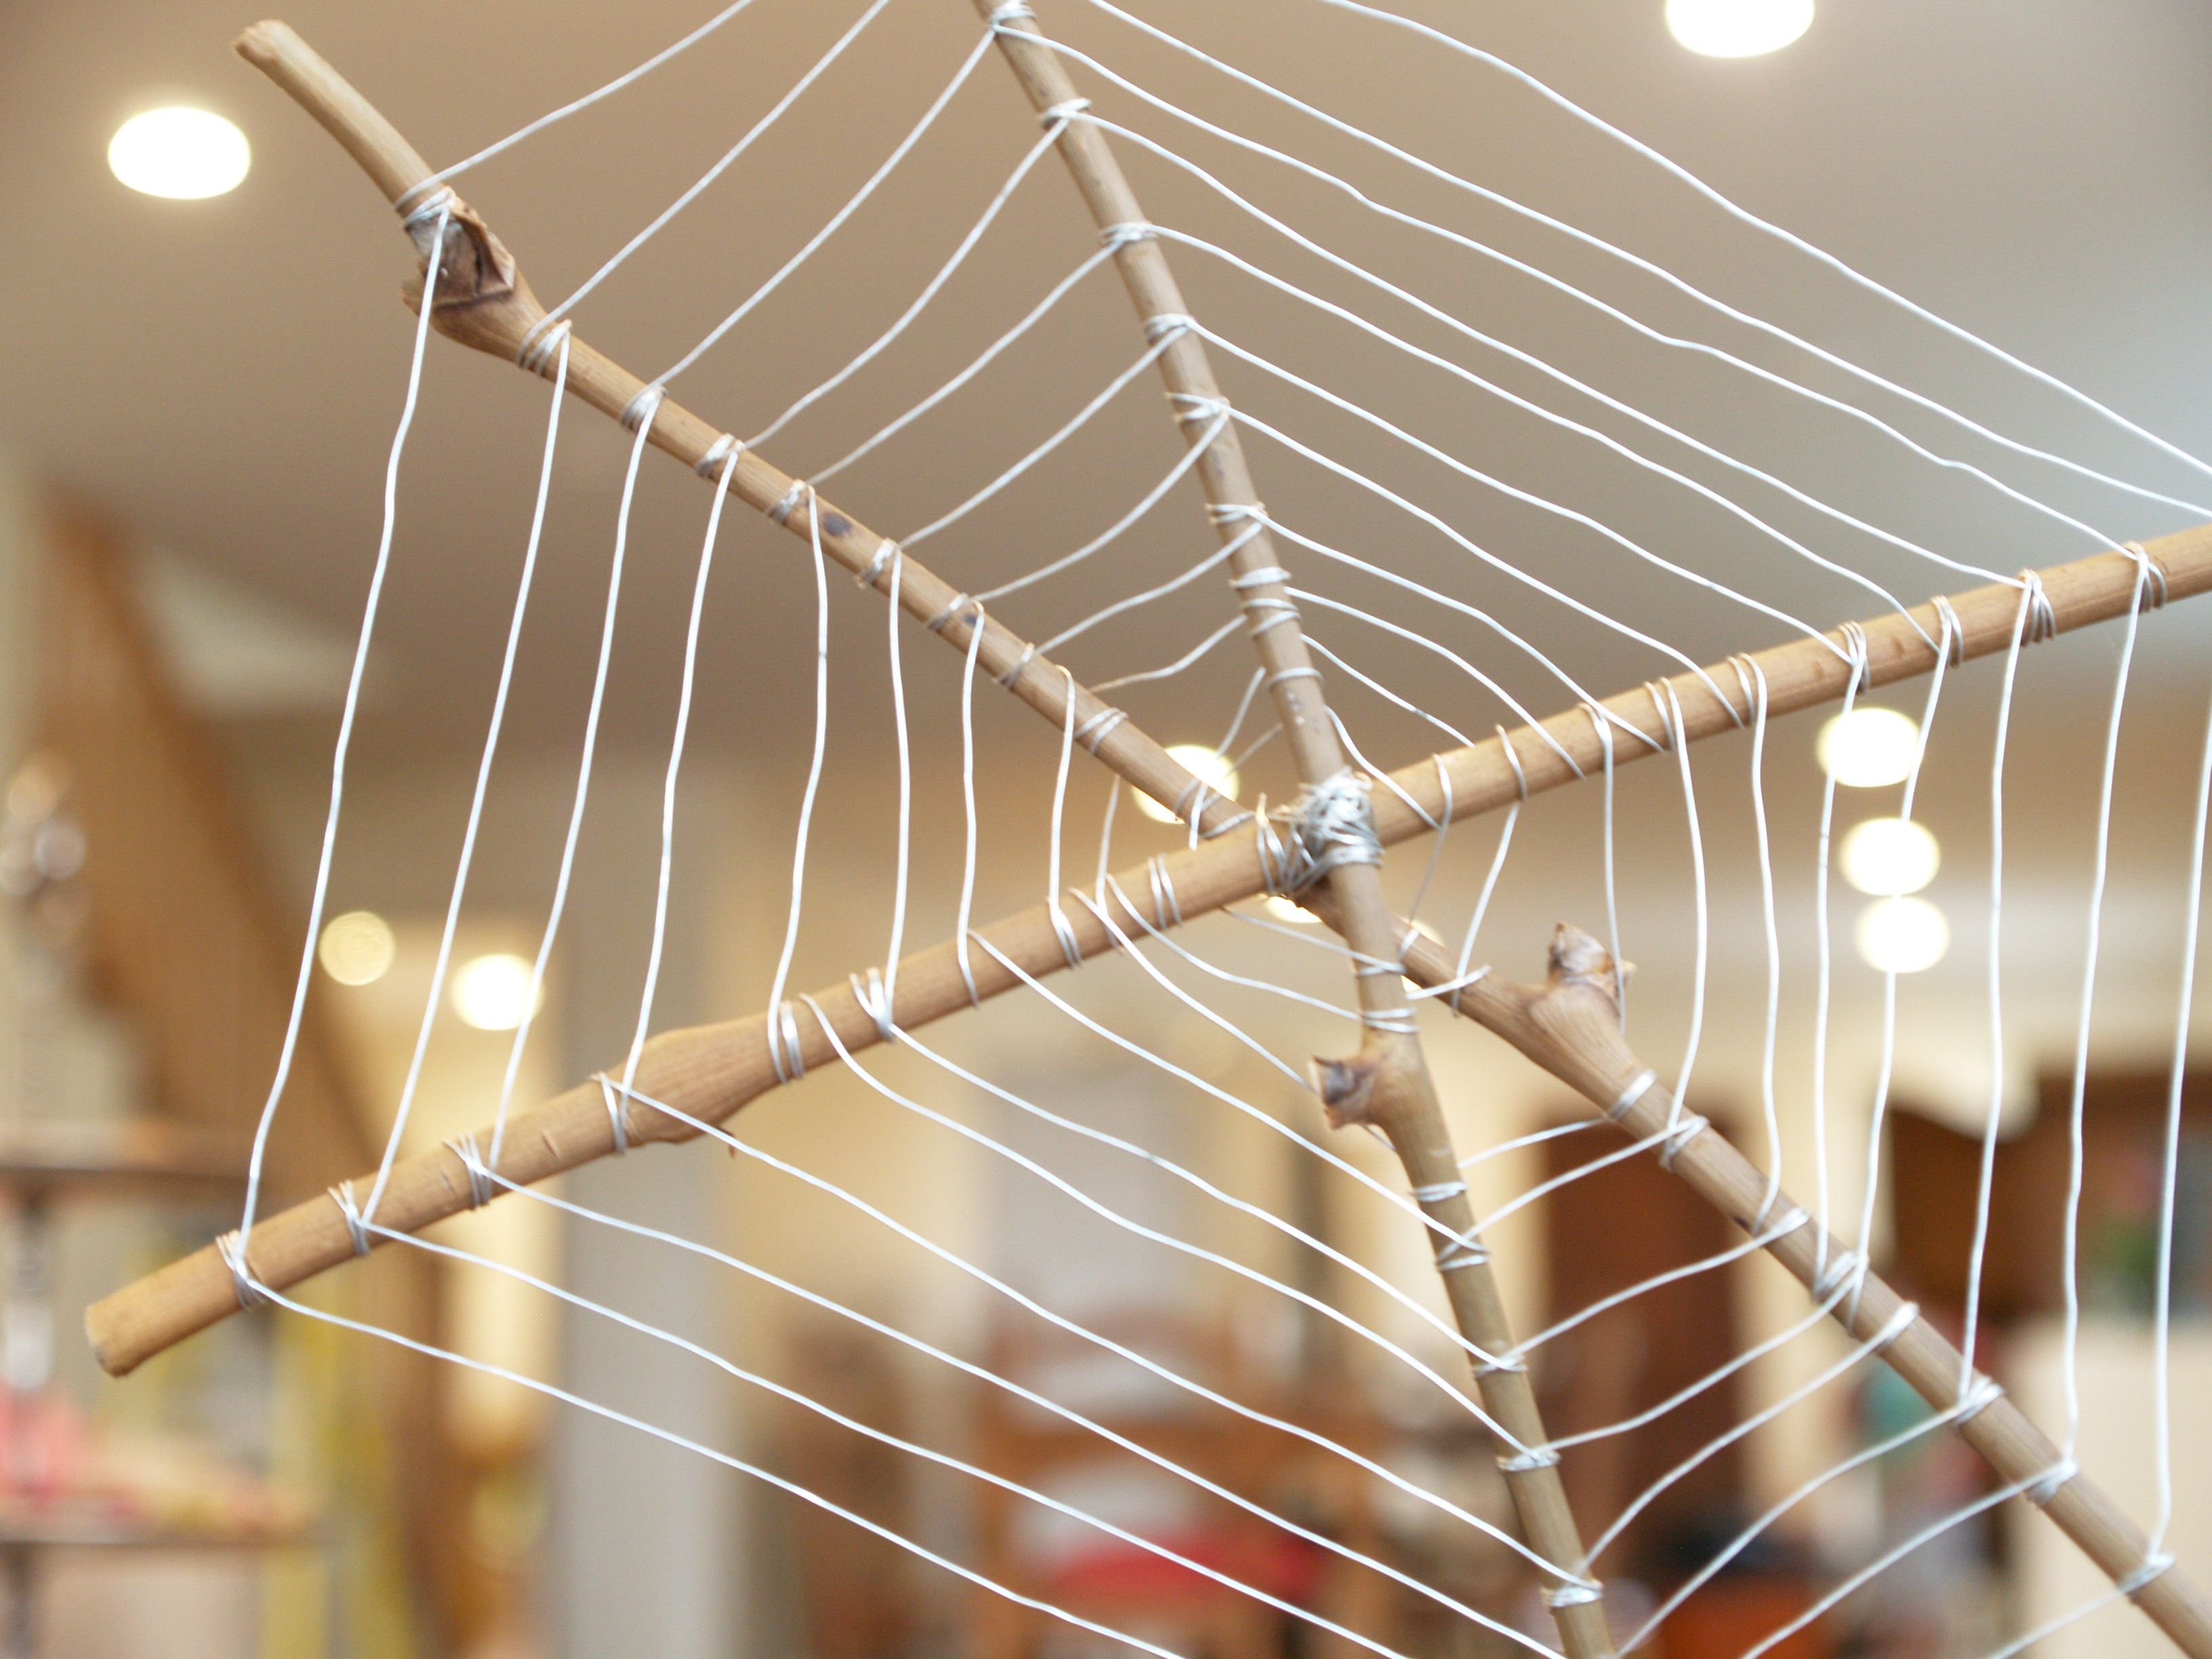 Spider Web Made From Sticks And String